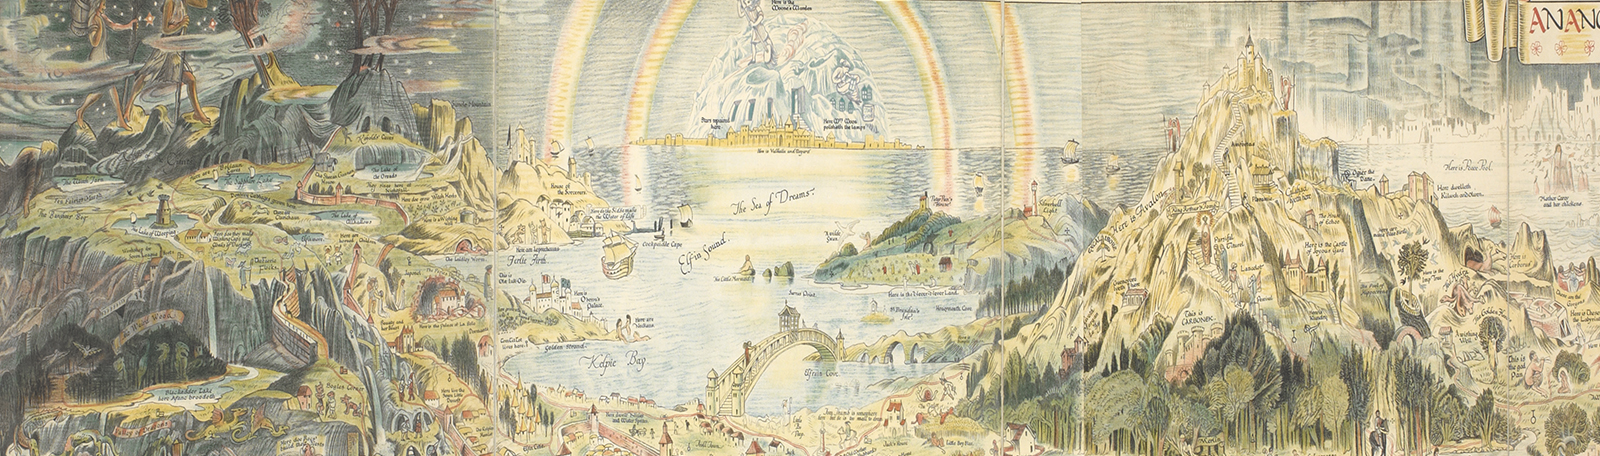 Popular culture banner - An ancient mappe of Fairyland